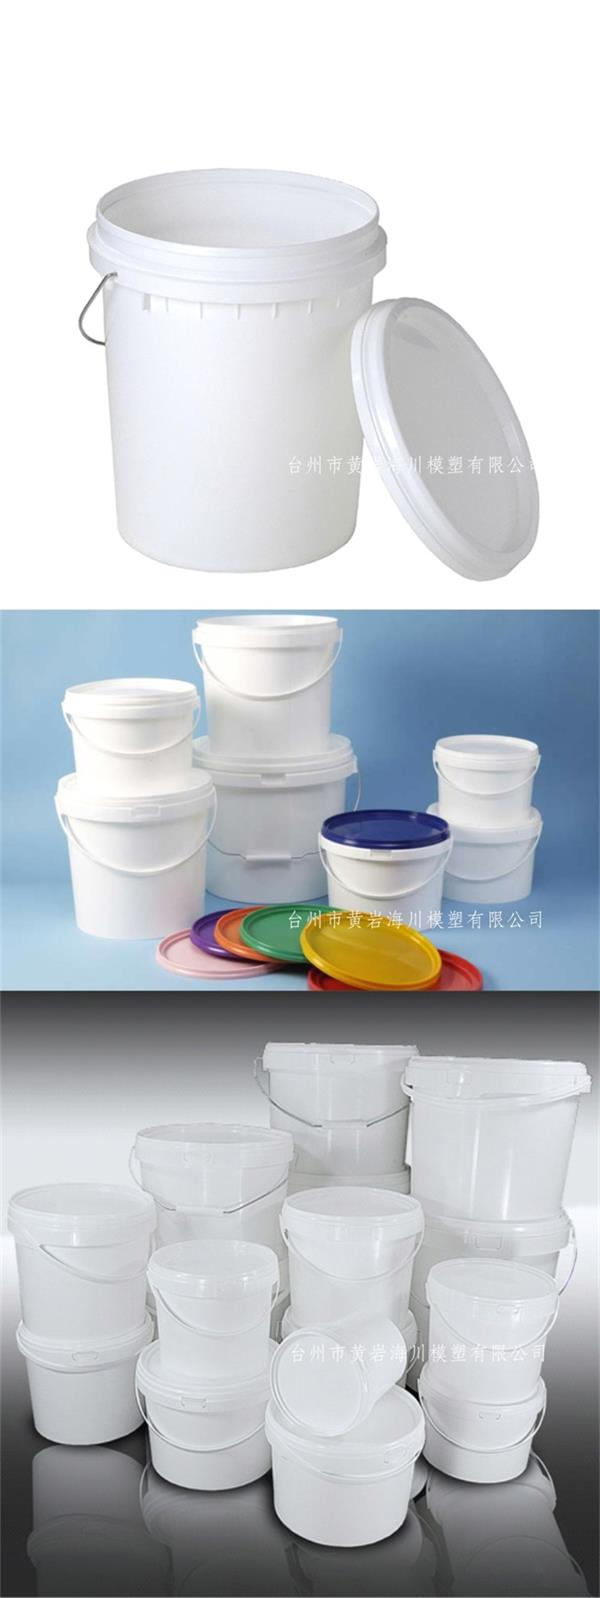 Paint bucket mould manufacturer and supplier